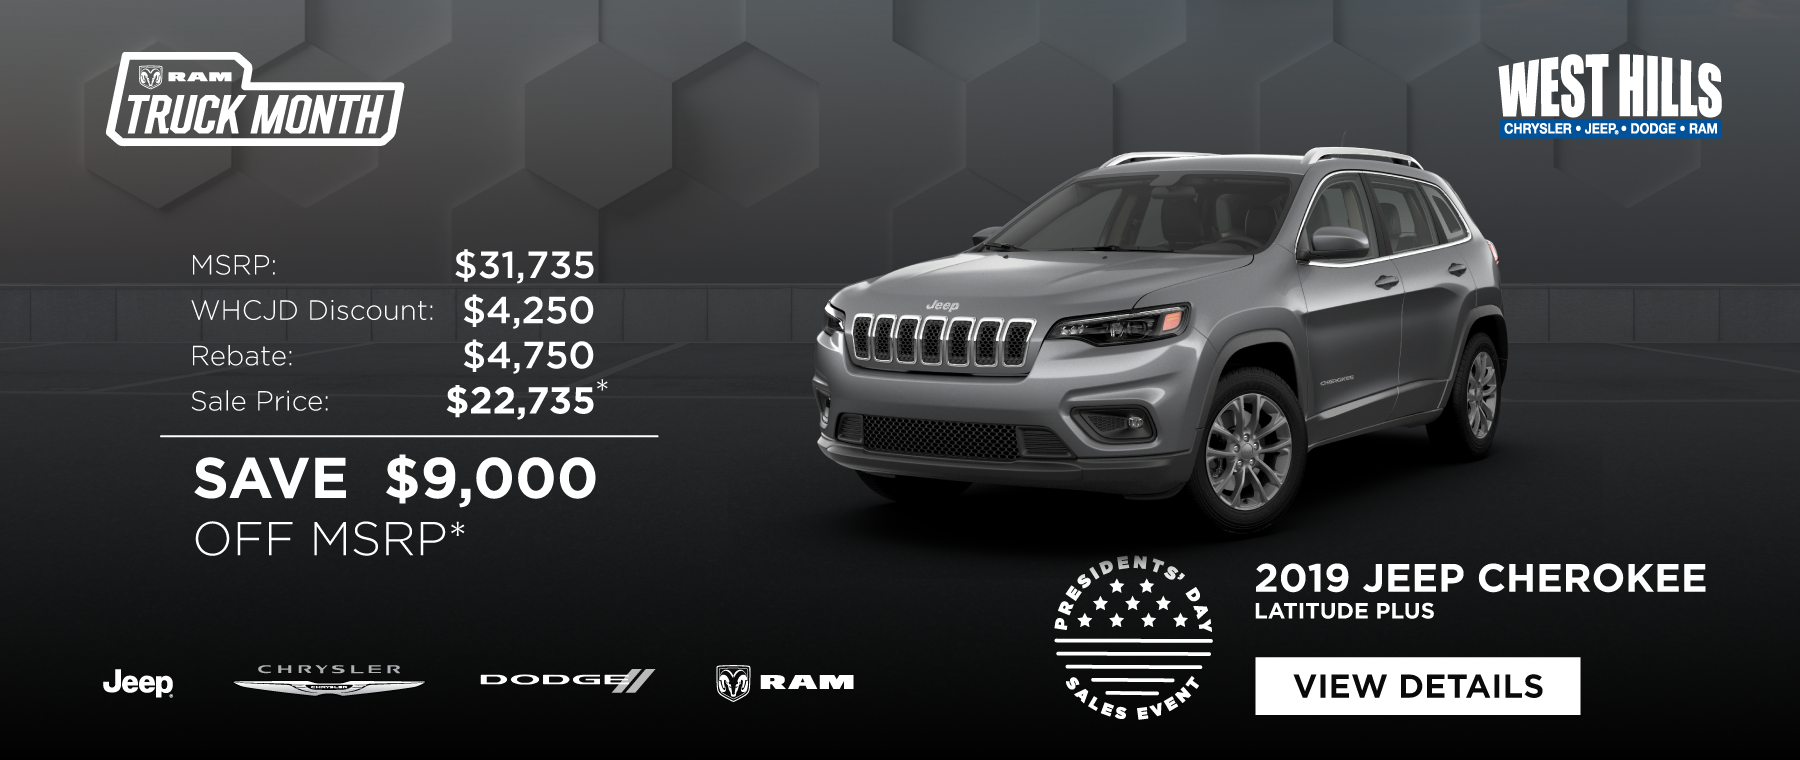 2019 Jeep Cherokee Latitude Plus  MSRP: $31,735 SAVE $9,000 OFF MSRP*  * Offer valid on 2019 Jeep Cherokee Latitude Plus. VIN: 1C4PJMLN9KD260130. MSRP $31,735. WHCJDR Discount $4,250. Rebate of $4,750. Based on approval of program ID 70CK1, WECK5, 45CJA3, 45CJA4, WECKA. Sale Price of $22,735. Subject to credit approval. Down payment and monthly payment may vary. Excludes taxes, tags, registration and title, insurance and dealer charges. A negotiable dealer documentary service fee of up to $150 may be added to the sale price or capitalized cost. Exp. 2/28/2019.